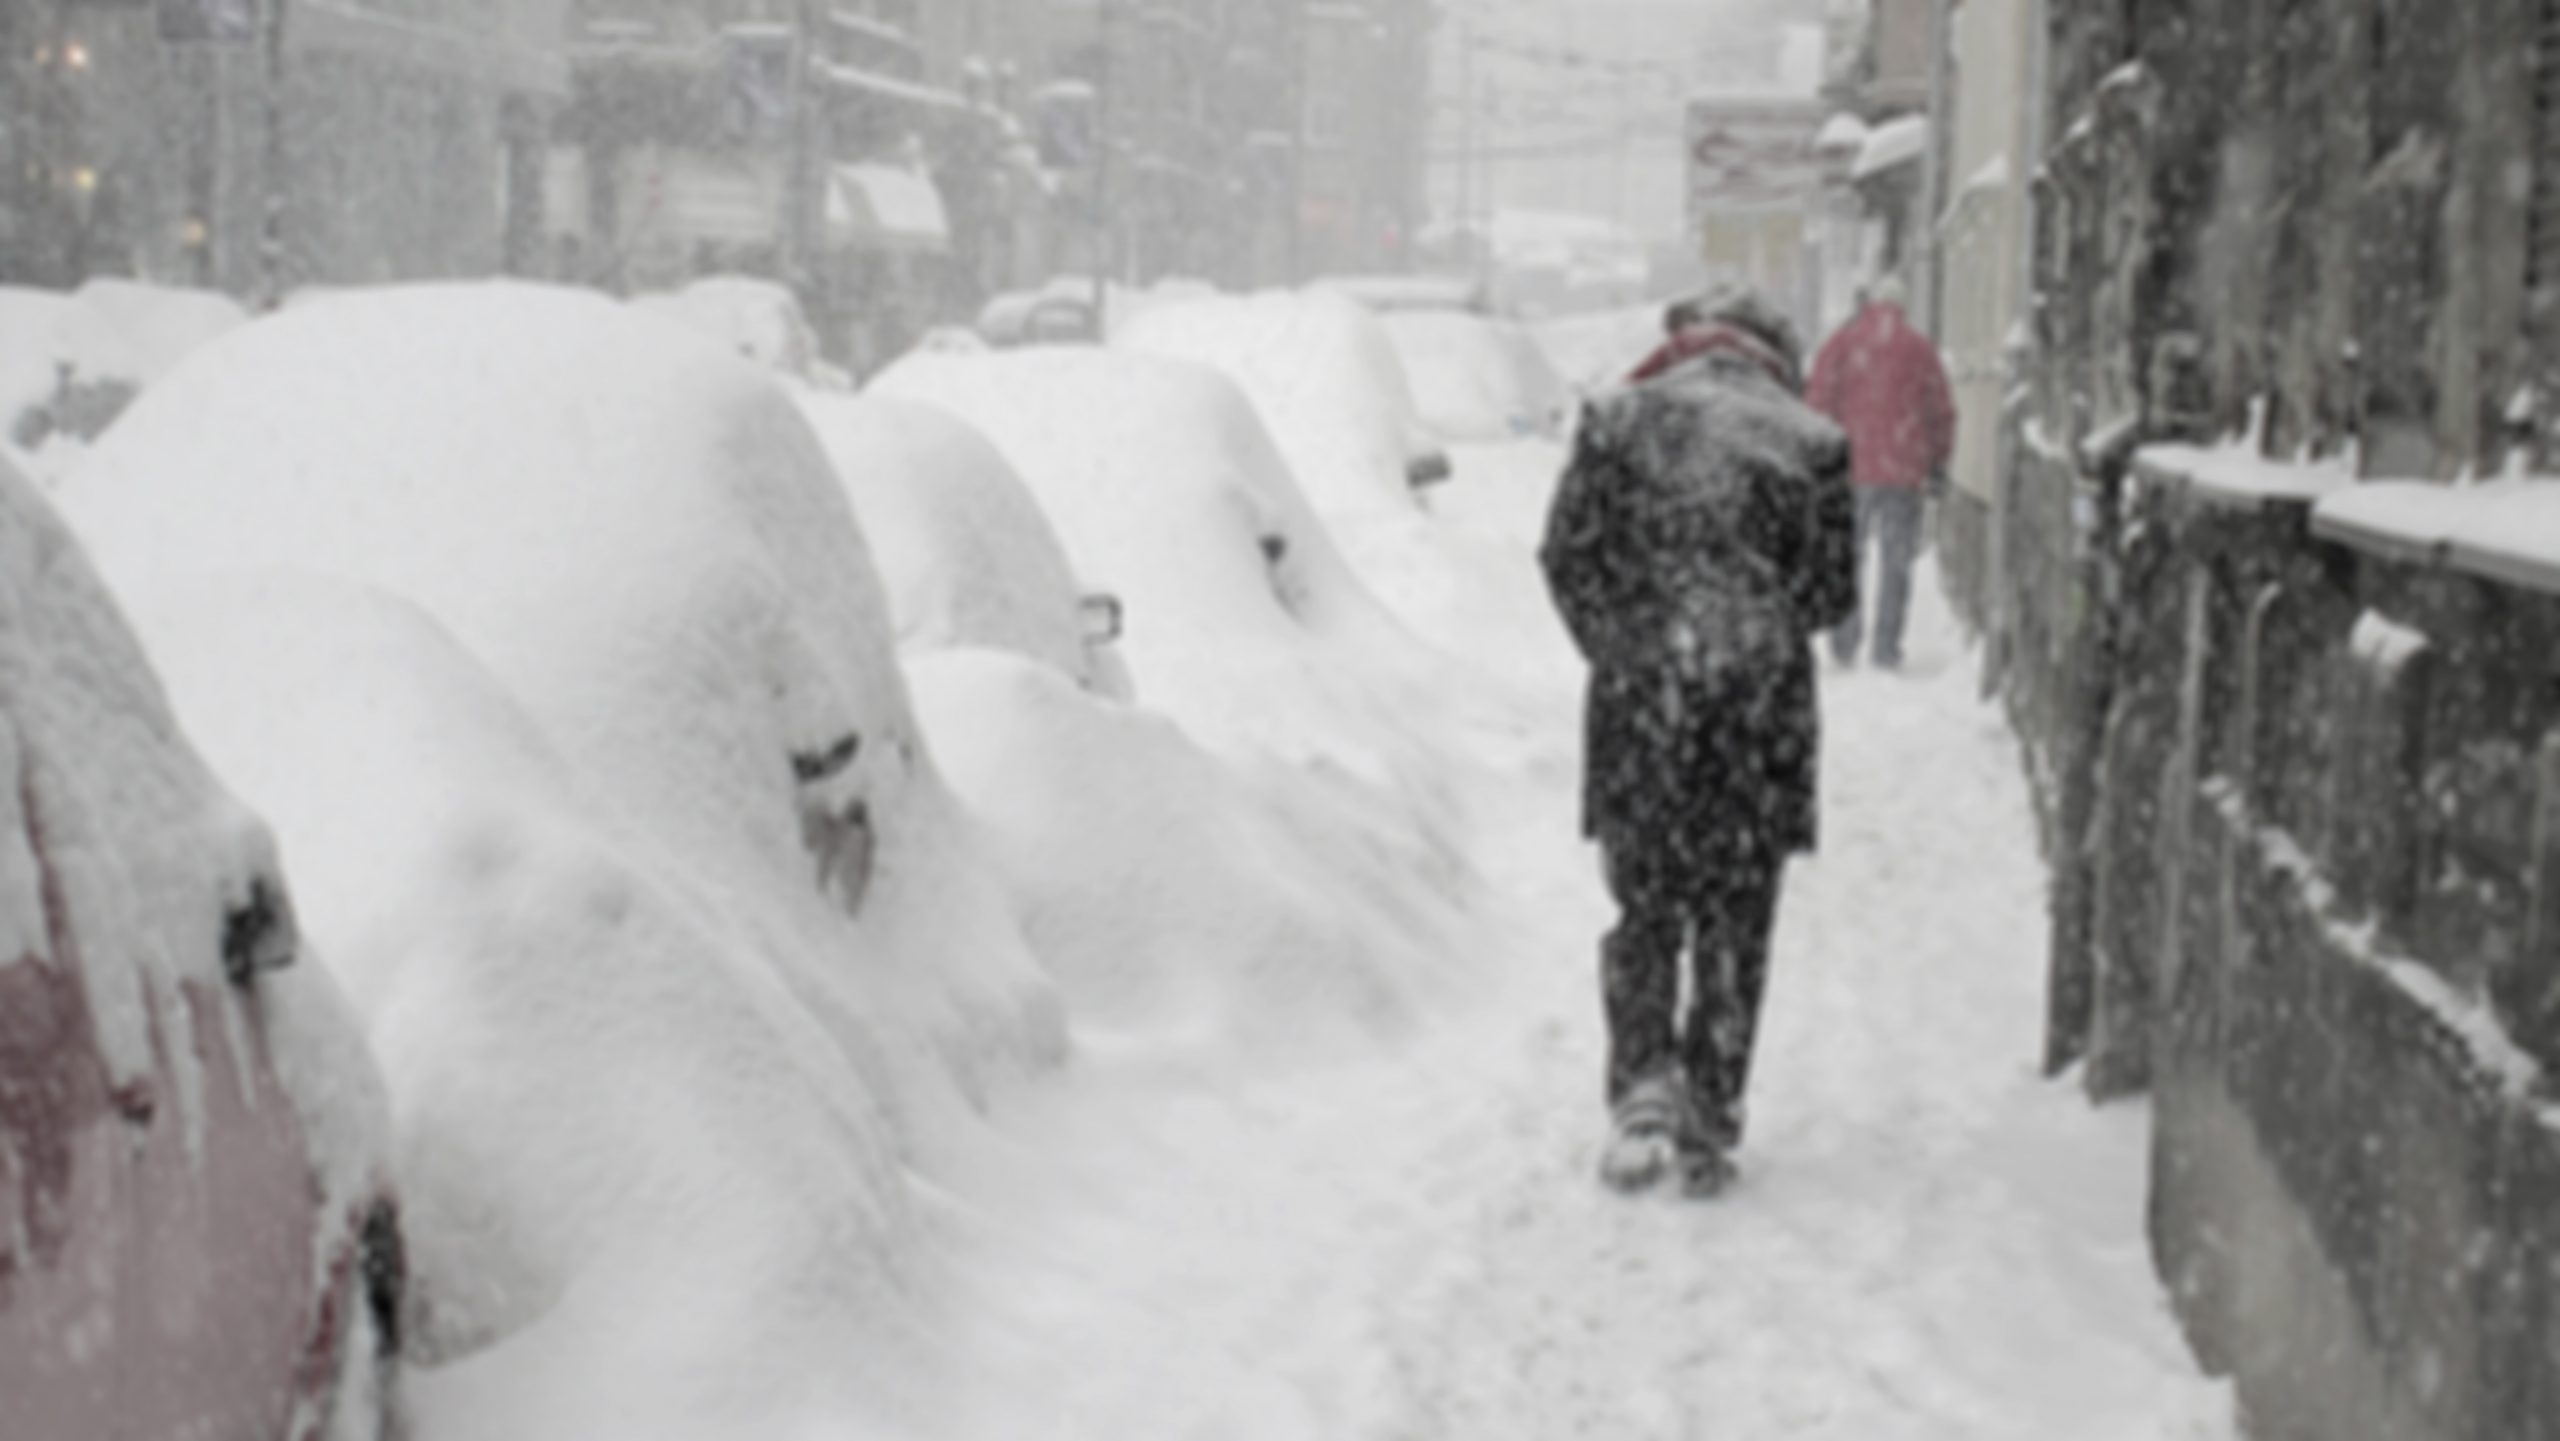 Man walking by snow-covered cars in snowstorm.